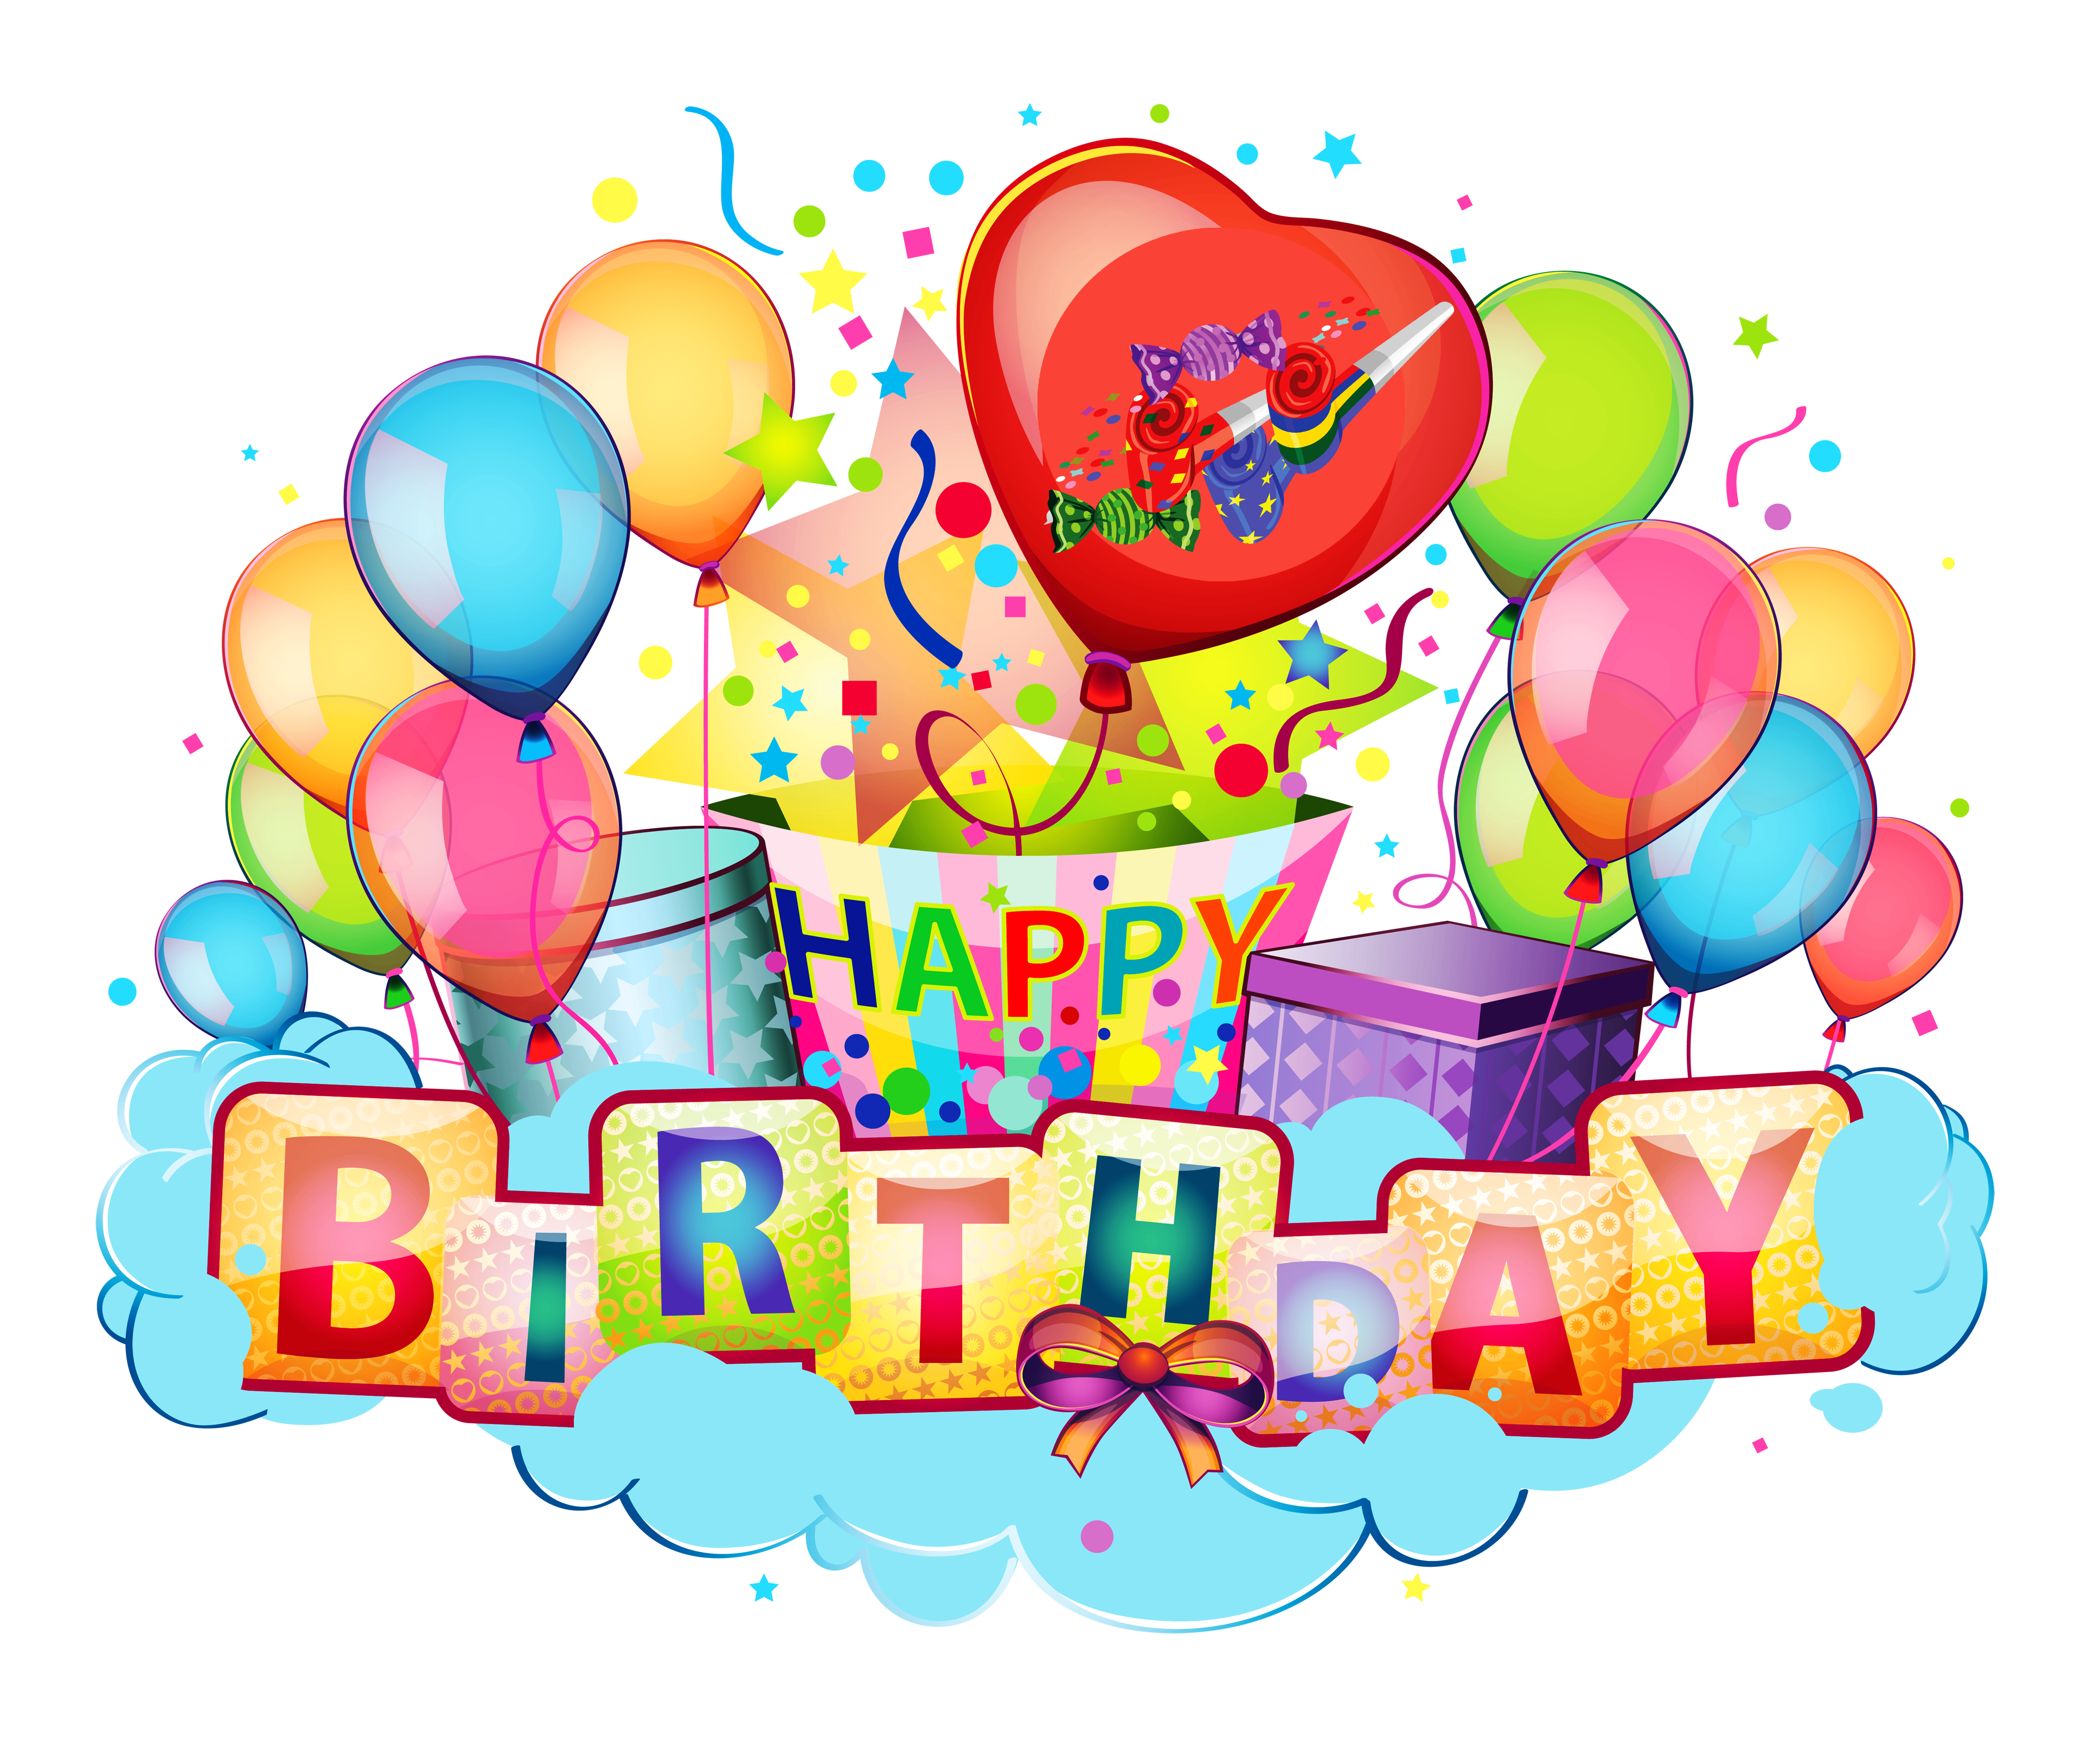 Happy 1st birthday clipart image free library My birthday clipart transparent background - ClipartFest image free library